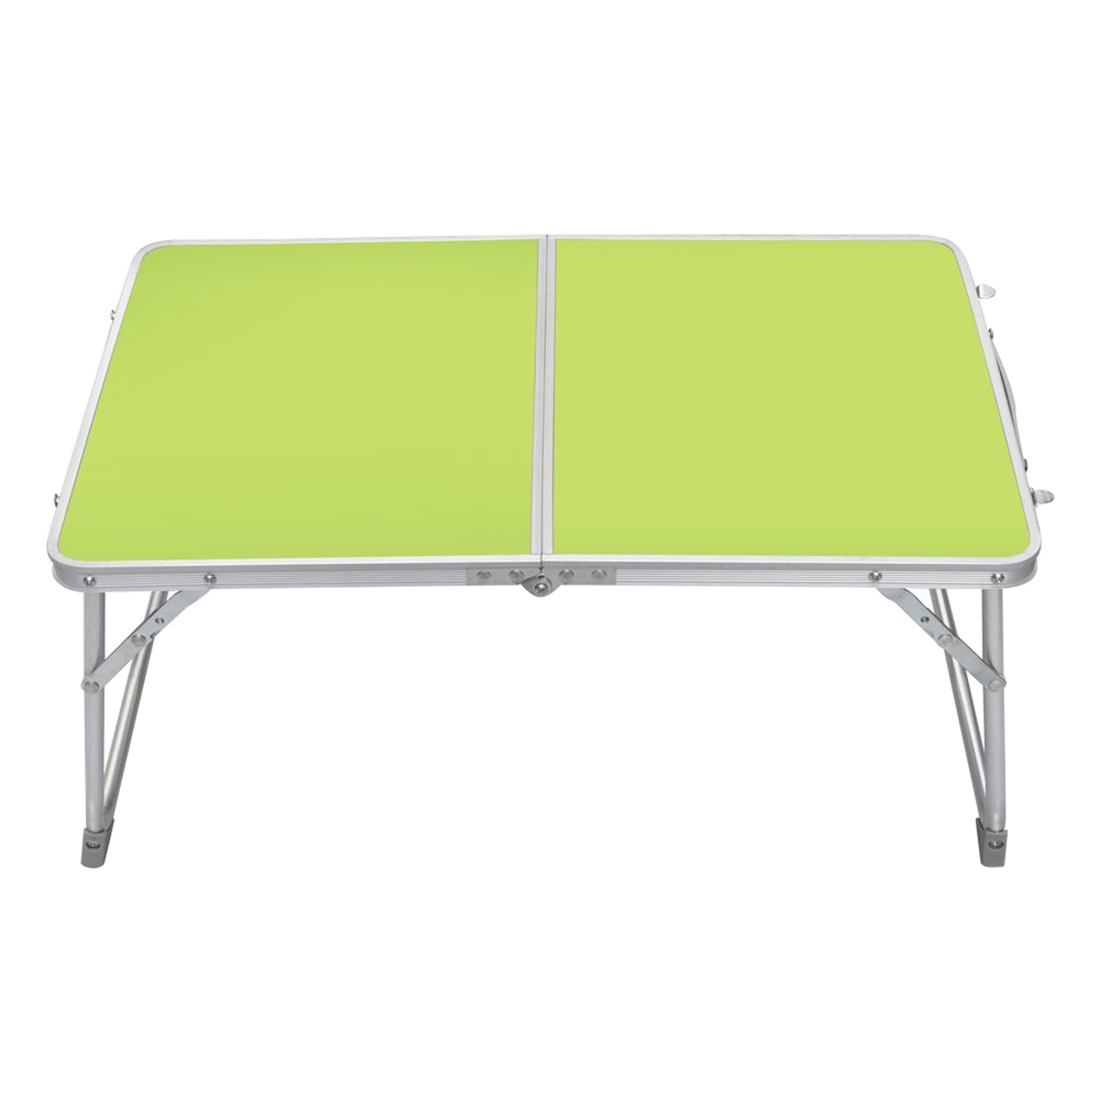 Best Small 62x41x28cm/24.4x16.1x11 PC Laptop Table Bed Desk Camping Picnic BBQ (Green)<br>